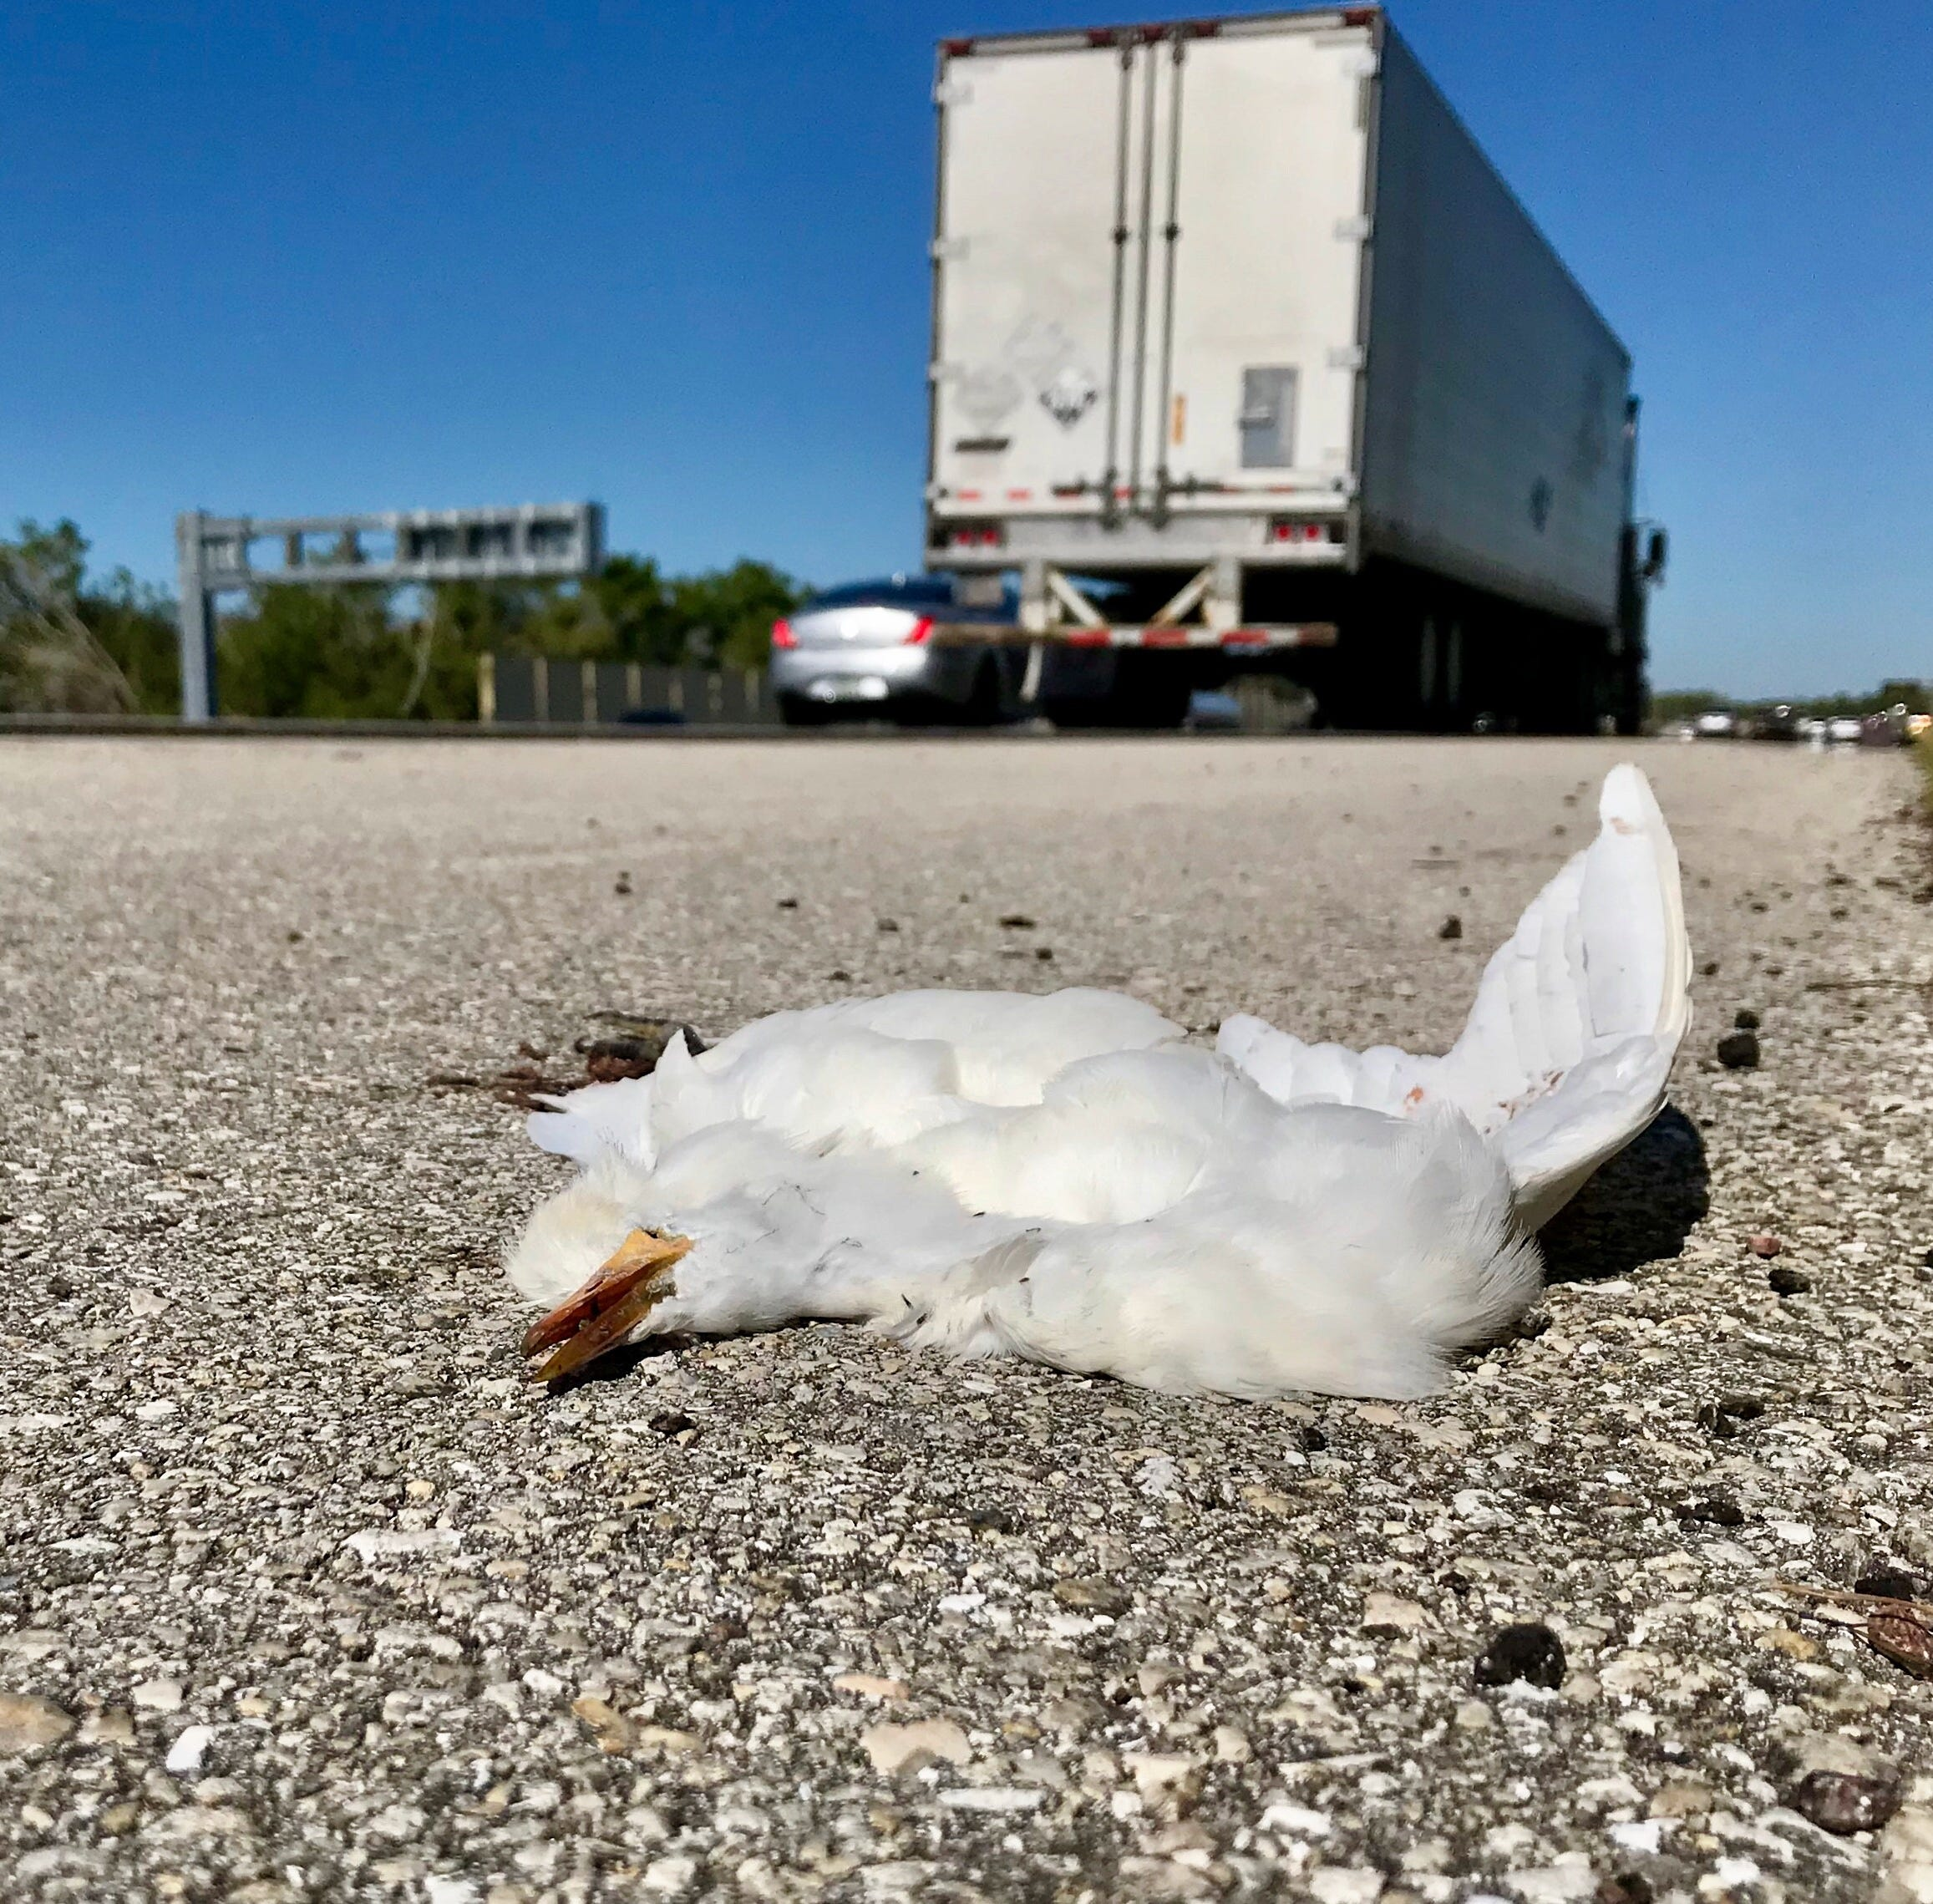 Mortality mystery: Why all the dead egrets on I-75?